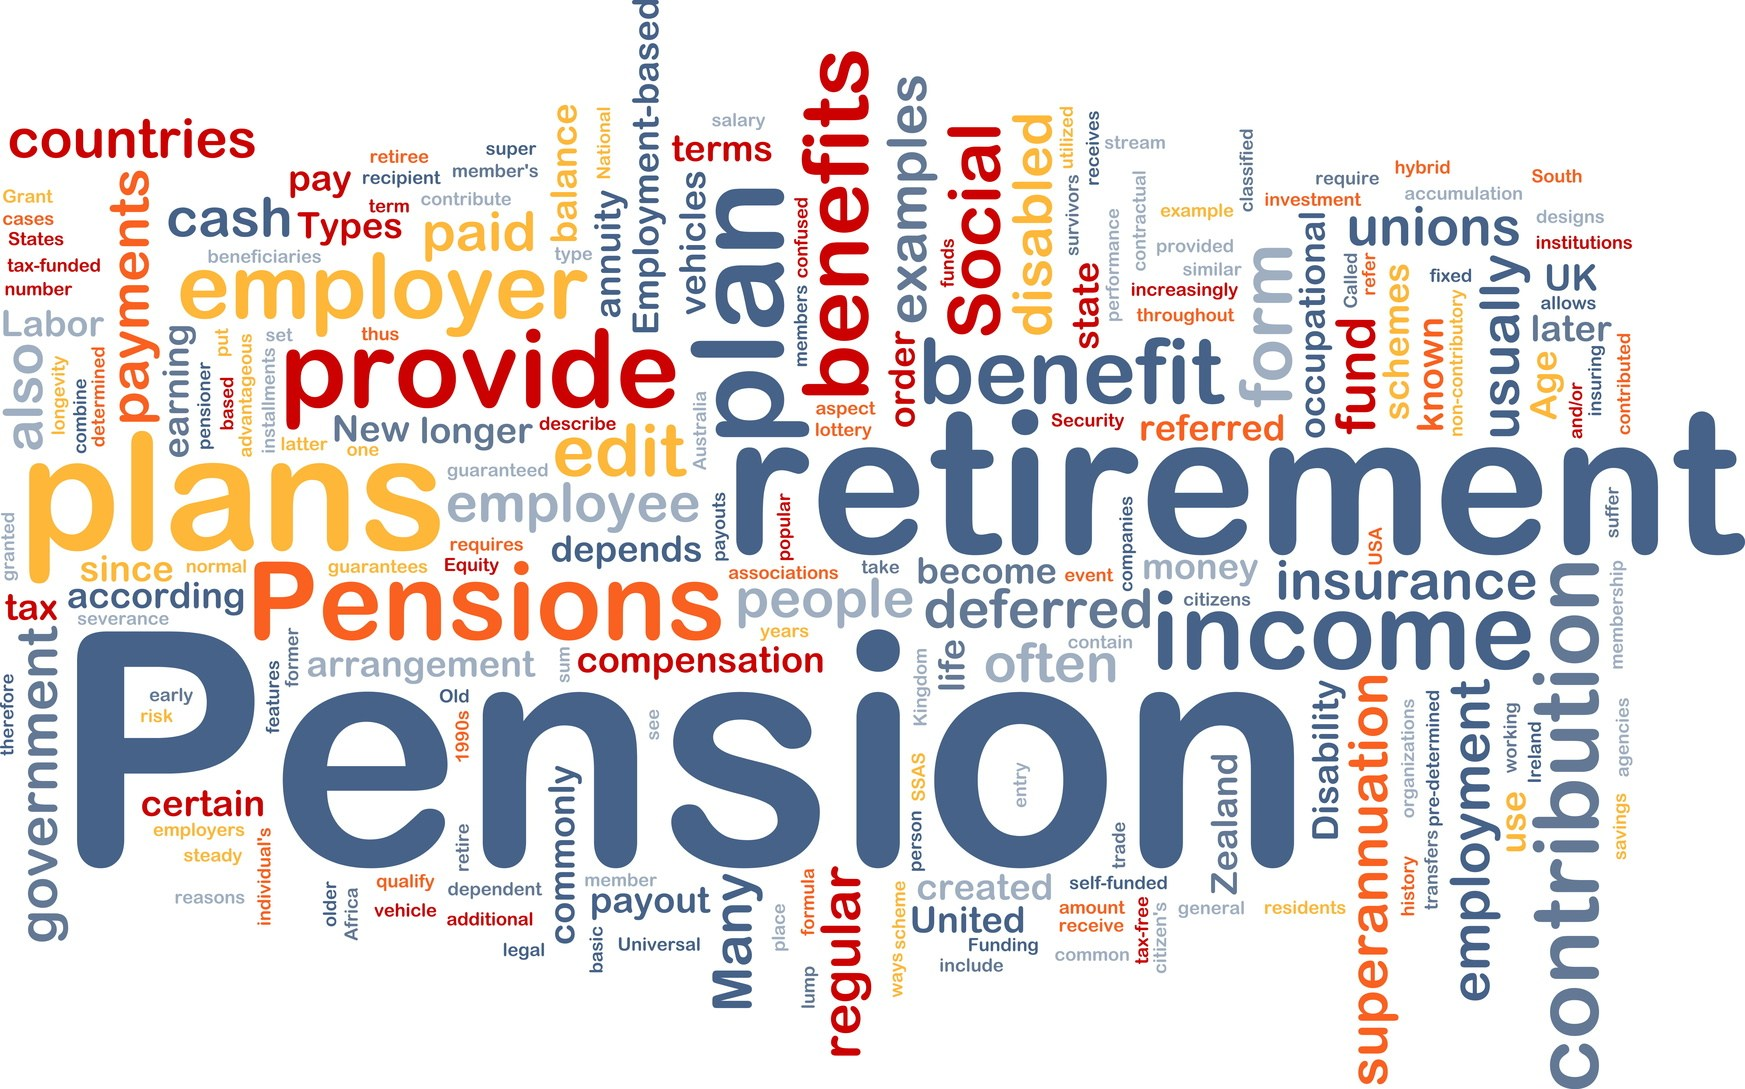 Knowing about pensions can help you establish the most effective plan for attracting and retaining top talent for your company.